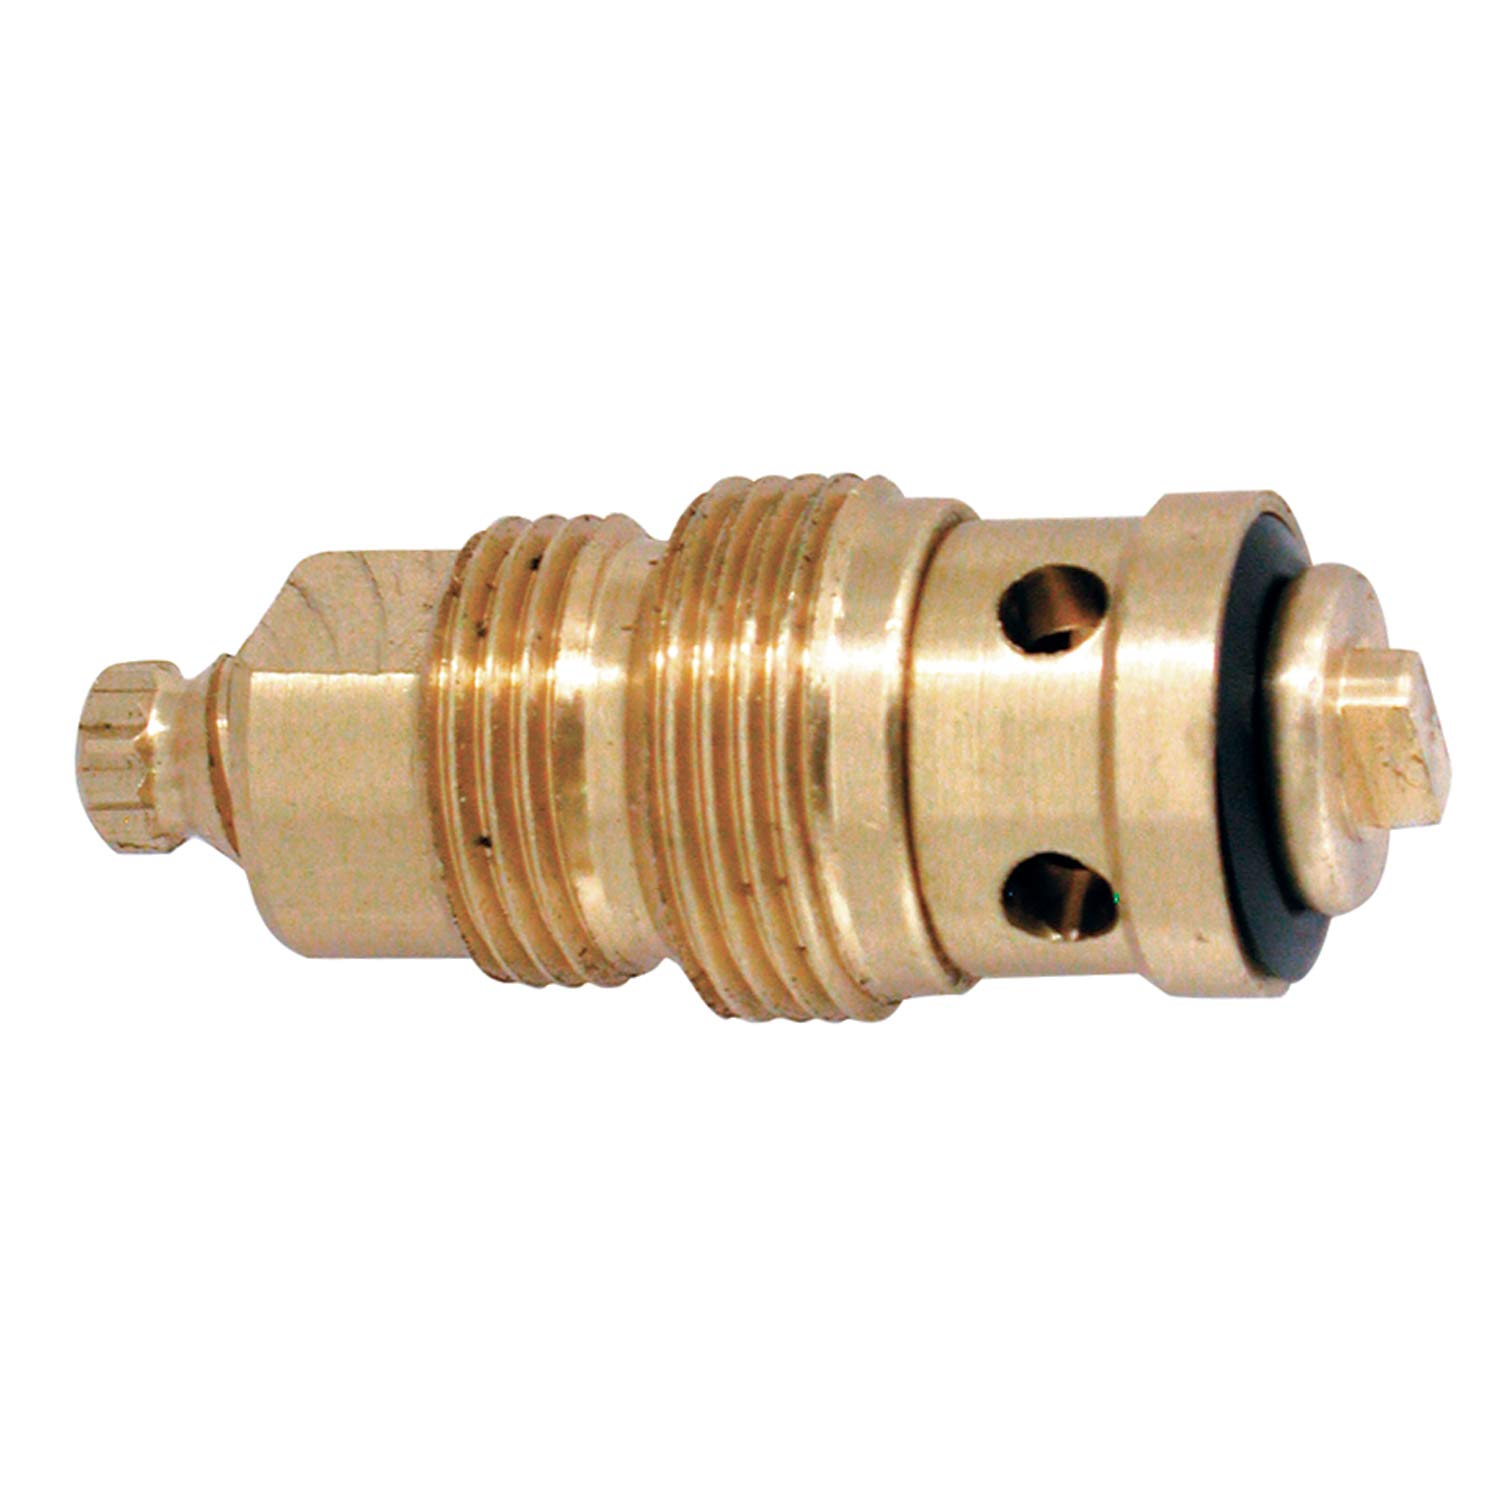 Danco, Inc. 15120E 5A-1C Stem, for Use with Crane Model Ll Faucets, Metal, Brass